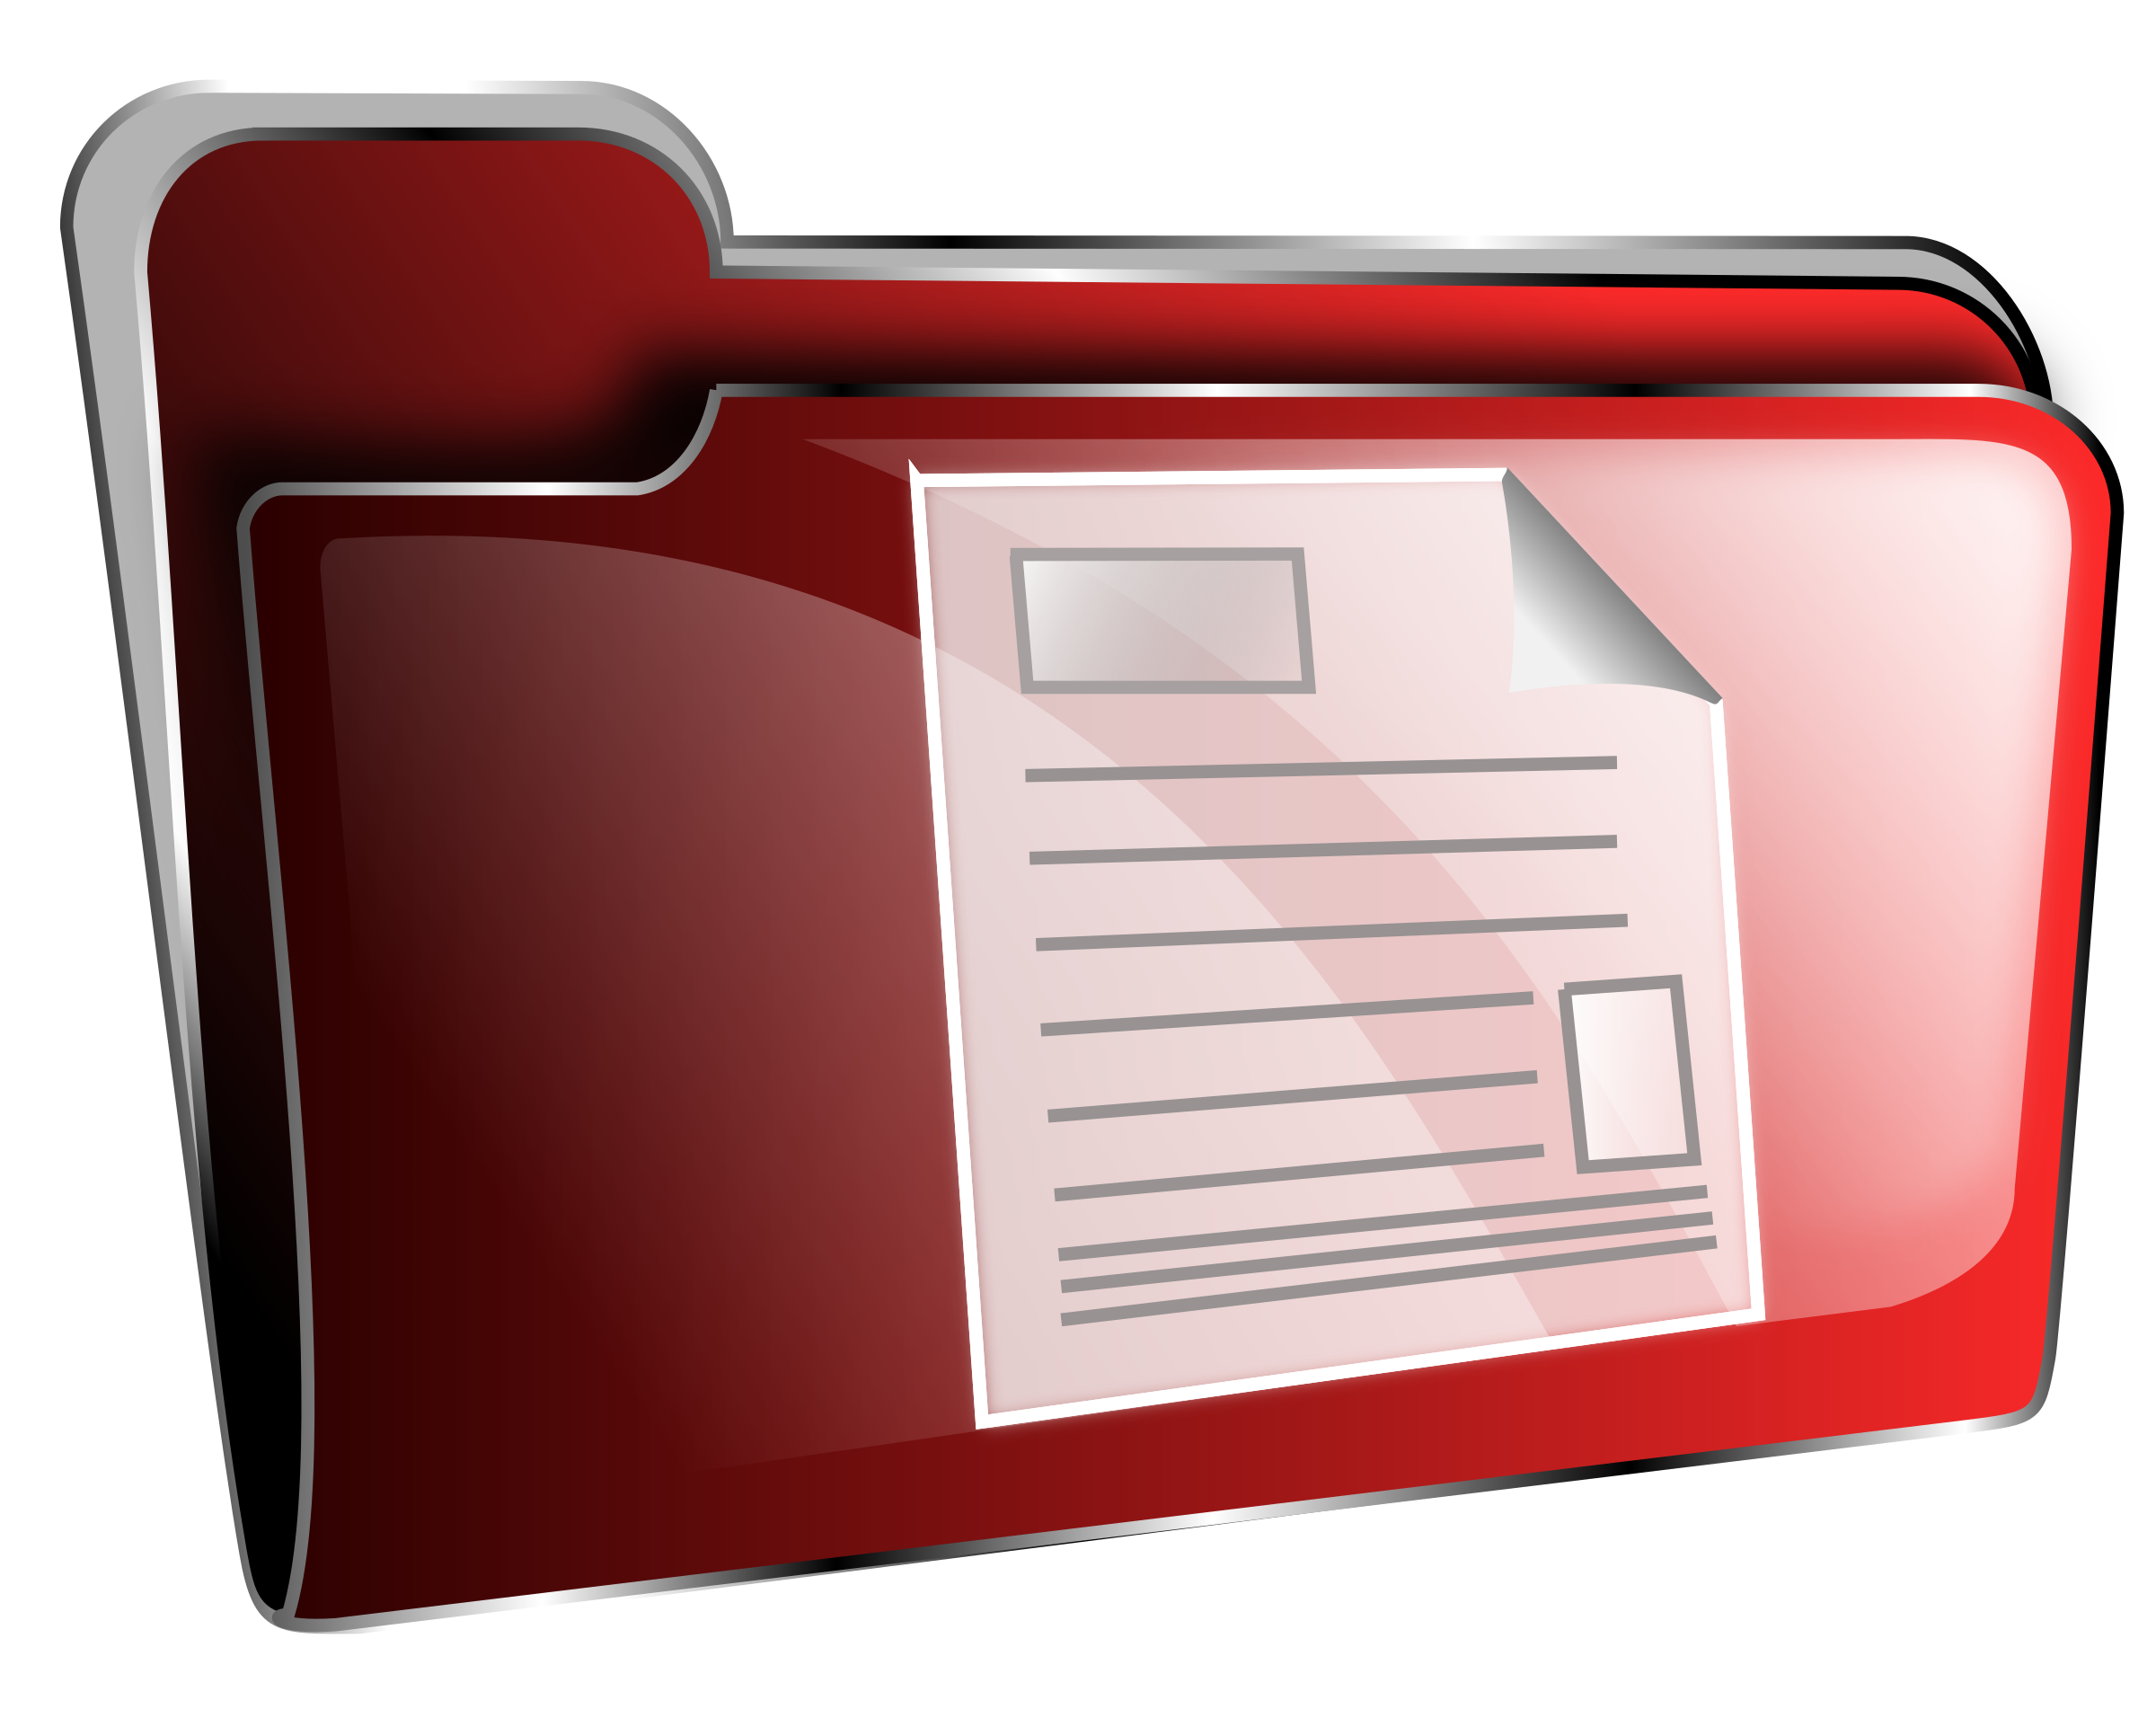 Folder icon red document by roshellin